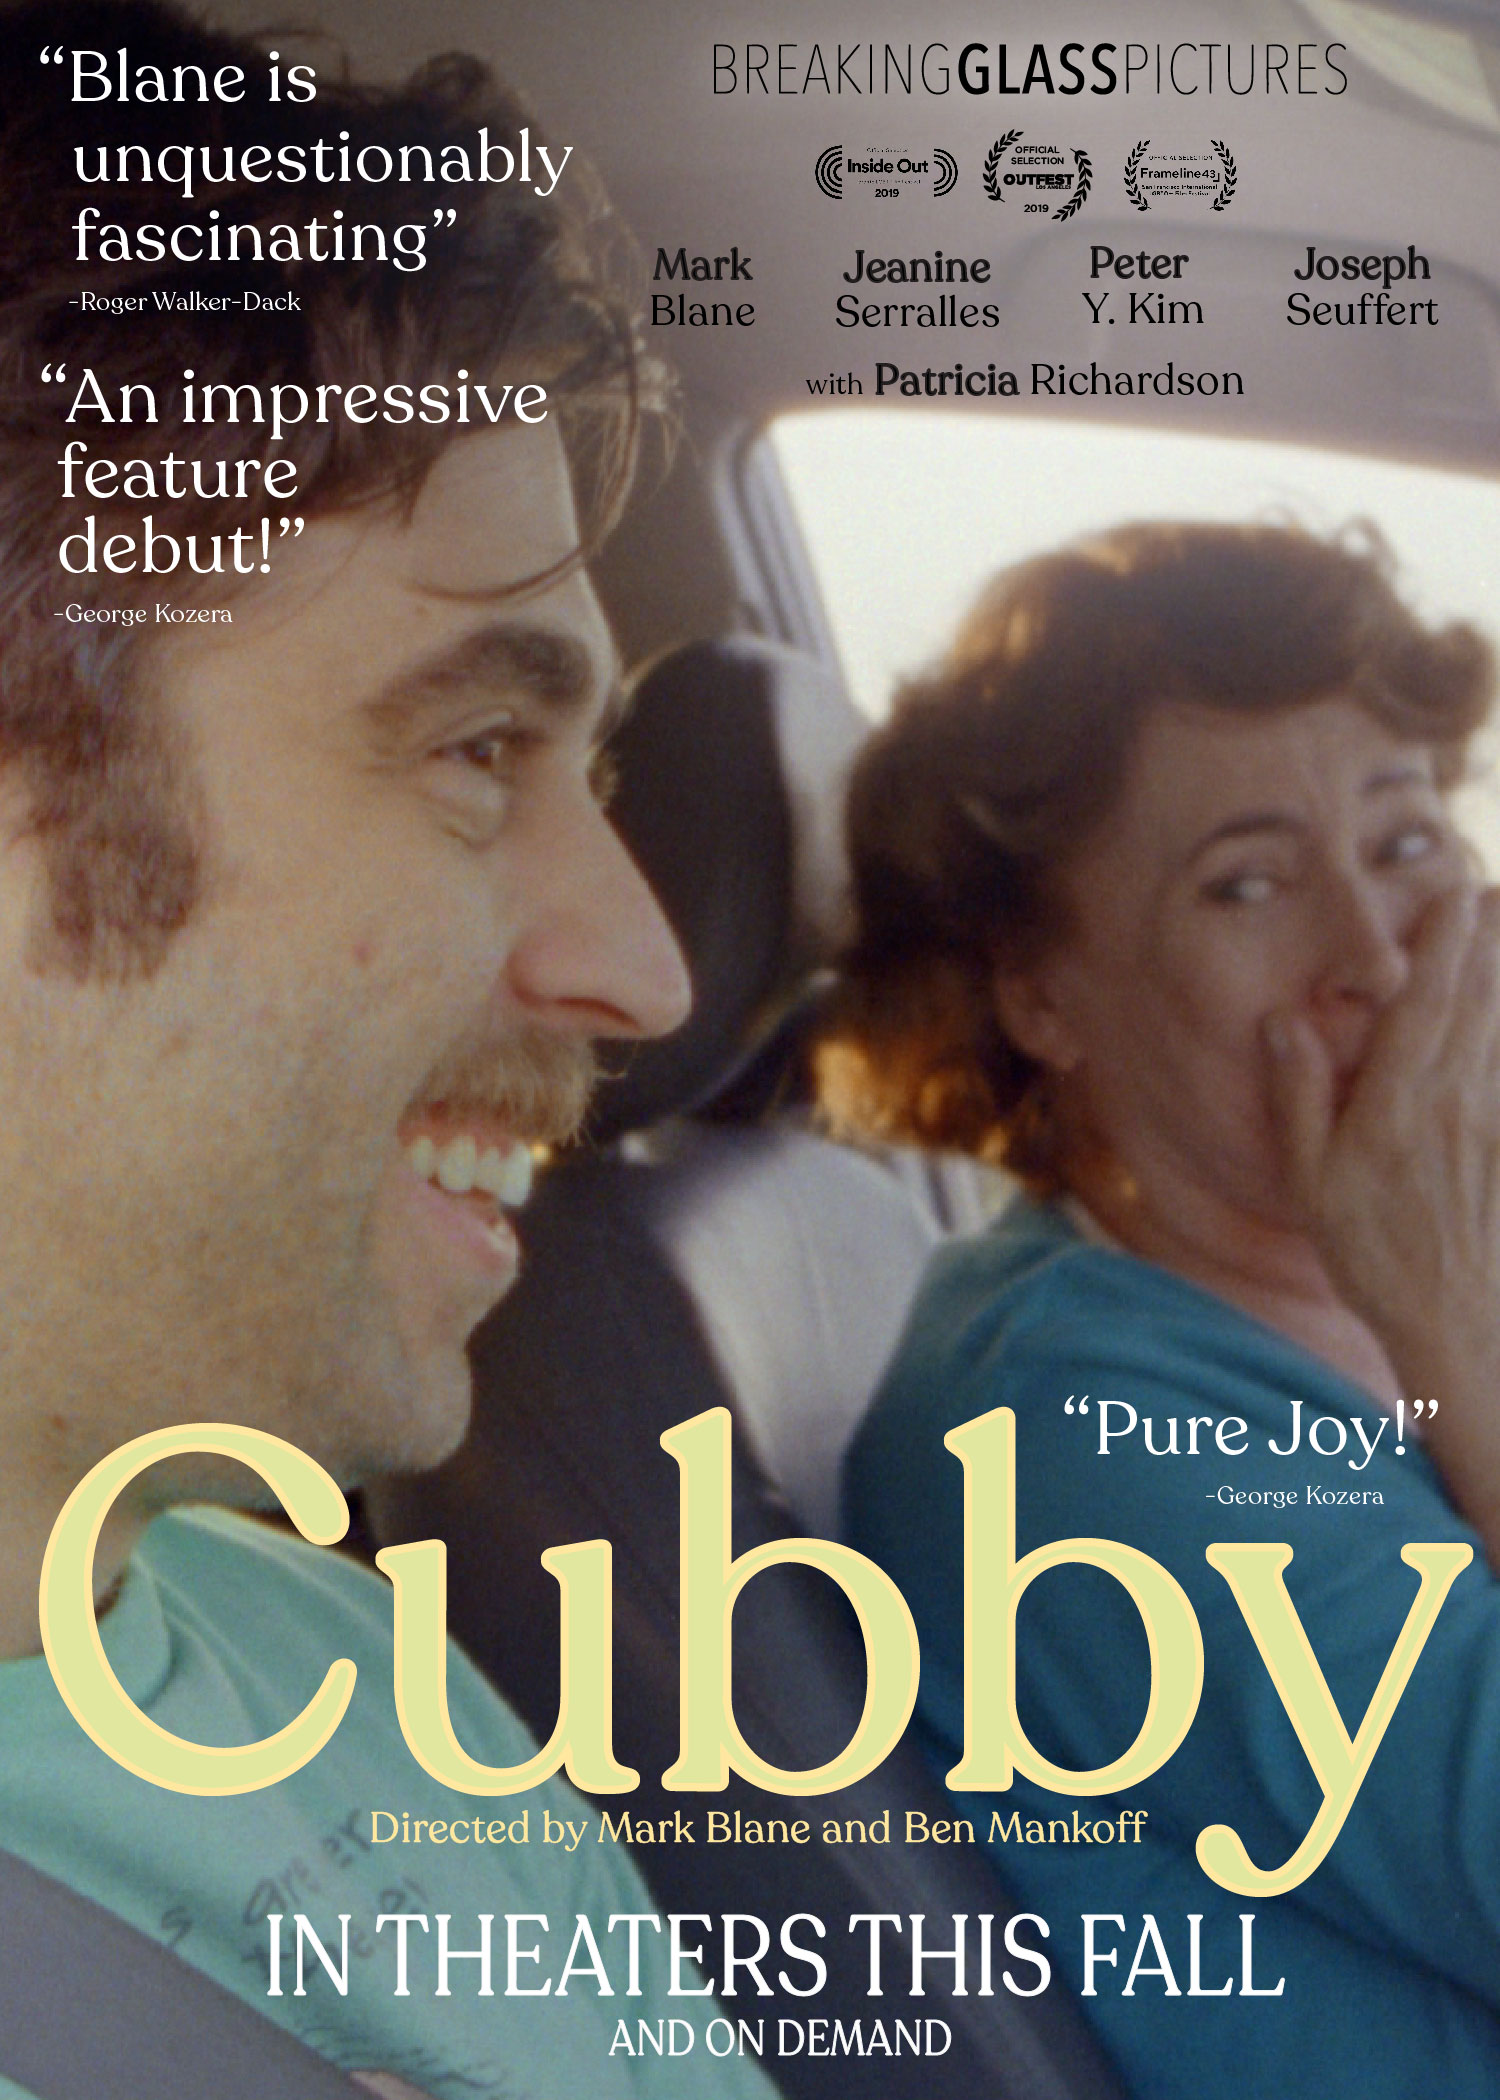 CUBBY IN THEATERS AND ON DEMAND THIS FALL 2019 - Breaking News: Check out the full article on Broadway World.comBreaking Glass Snuggles Up To Indie Gem CUBBYBreaking Glass Pictures has acquired North American rights to the eccentric, lovable LGBTQ feature CUBBY.Breaking Glass acquired rights to the film in April in a deal negotiated between Breaking Glass CEO Rich Wolff and Jordan Mattos, Managing Director of Aspect Ratio Films. CUBBY will open theatrically in New York City, followed by a DVD & VOD…